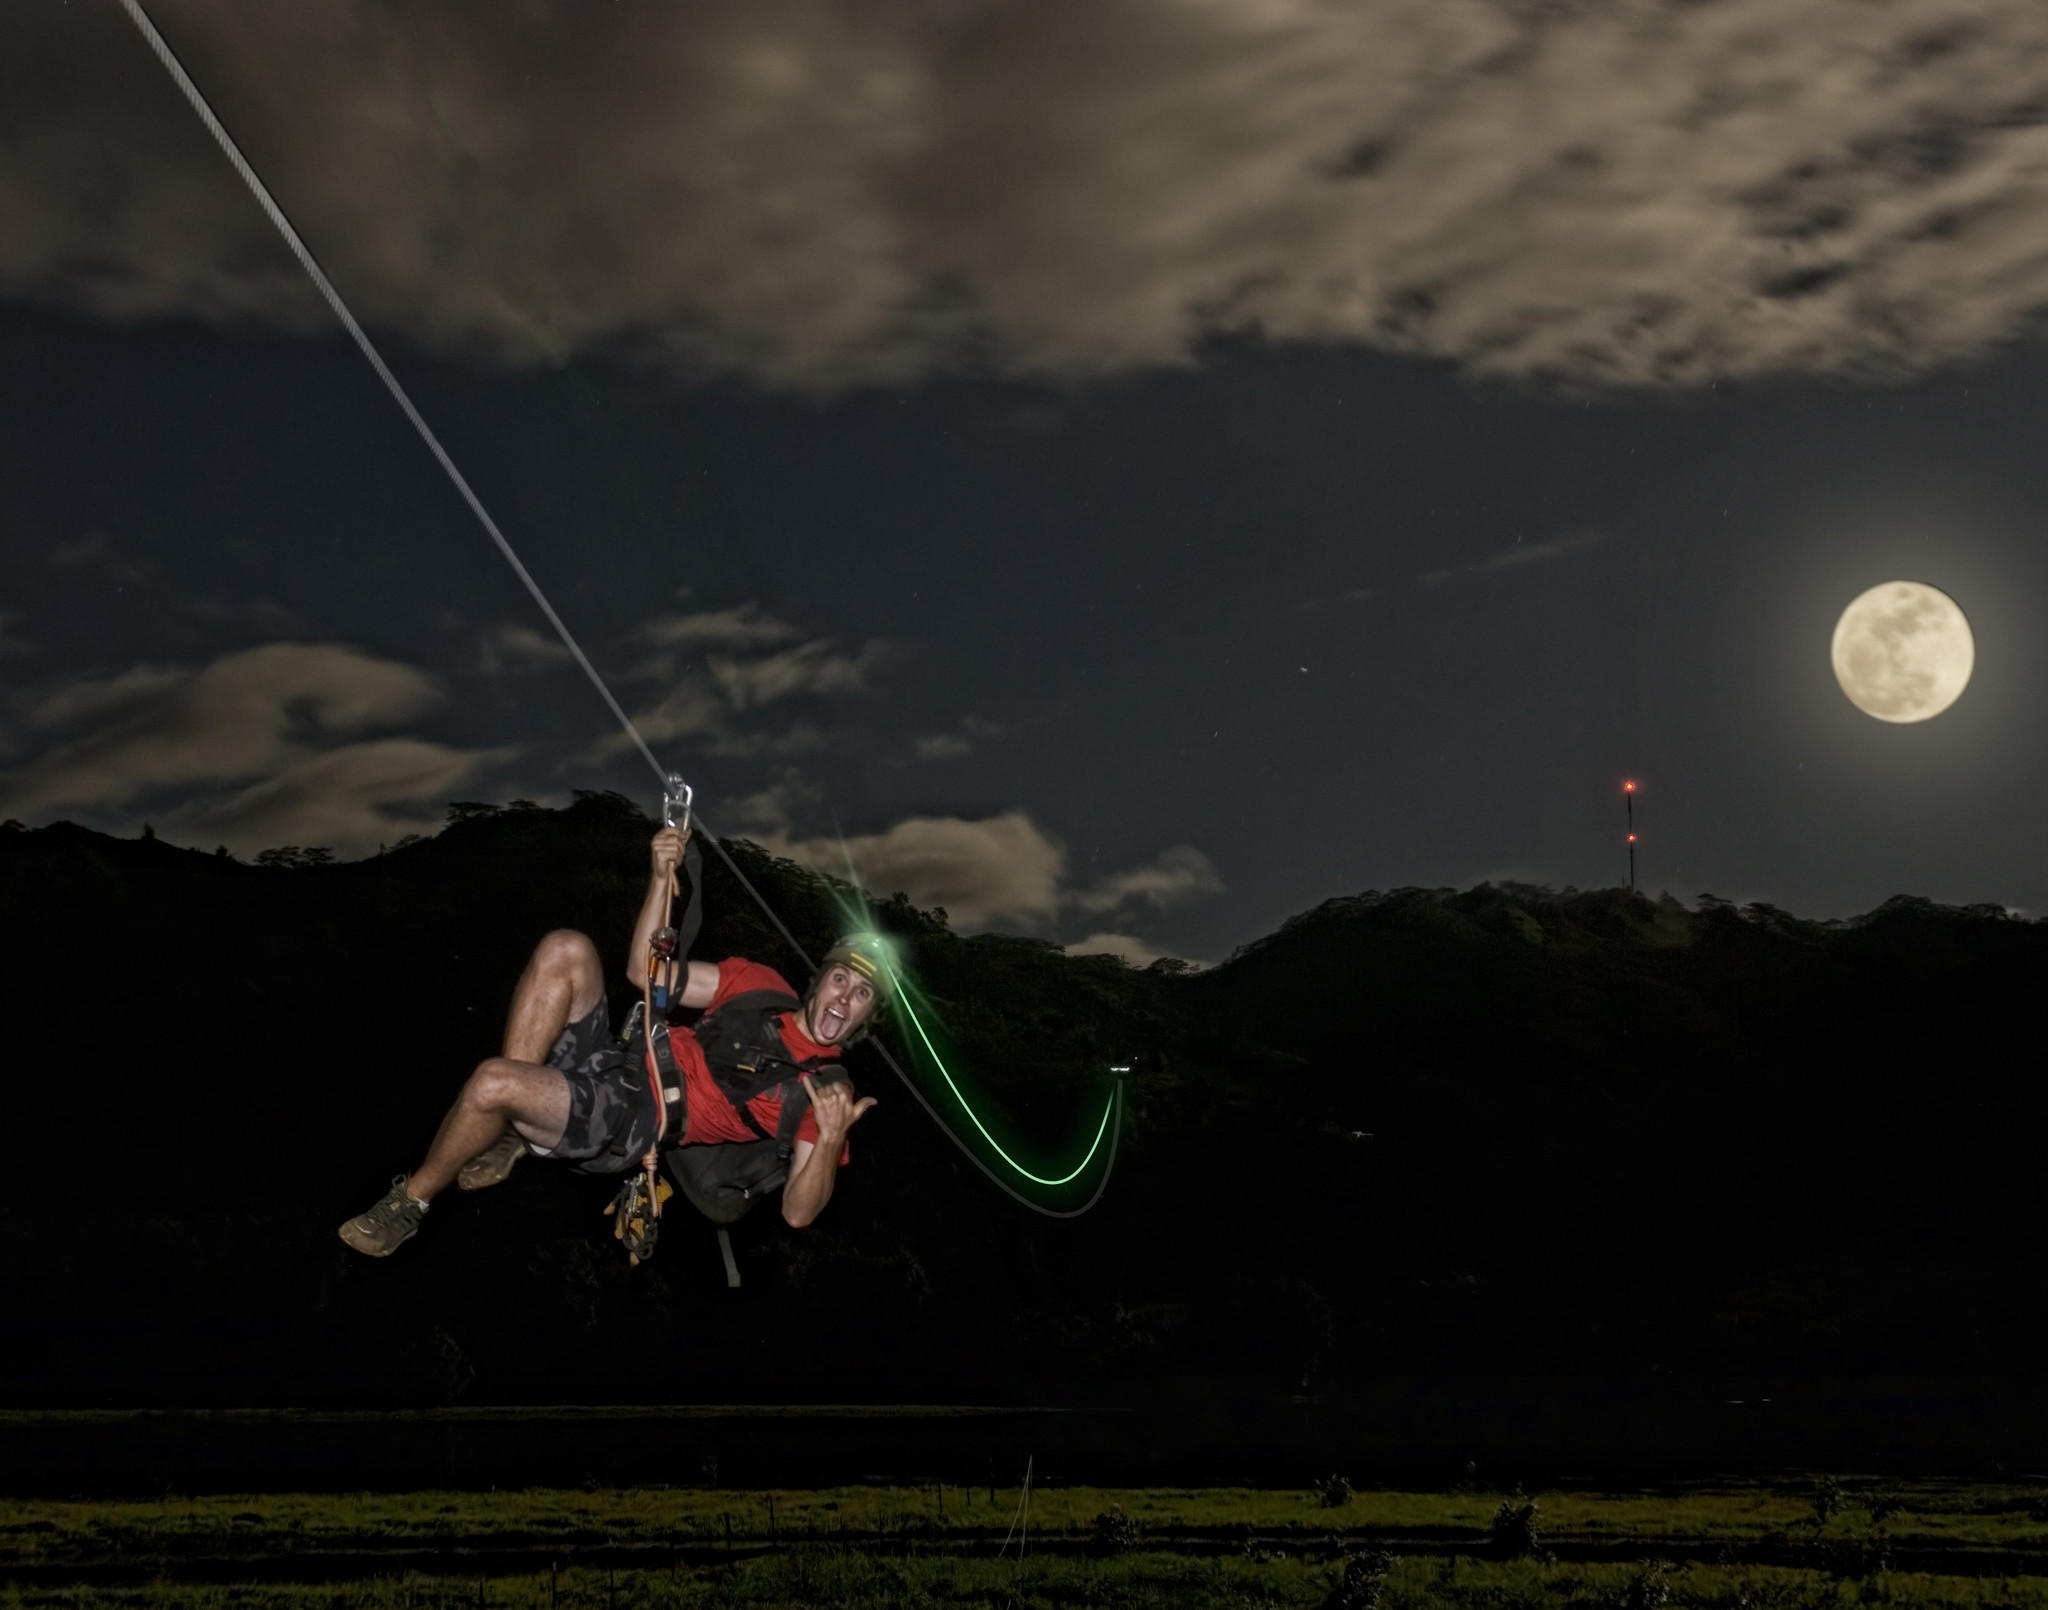 The glow of a headlamp leaves an eerie trail as a guest crosses the longest of eight lines during the Sunset Zip attraction on Kauai.